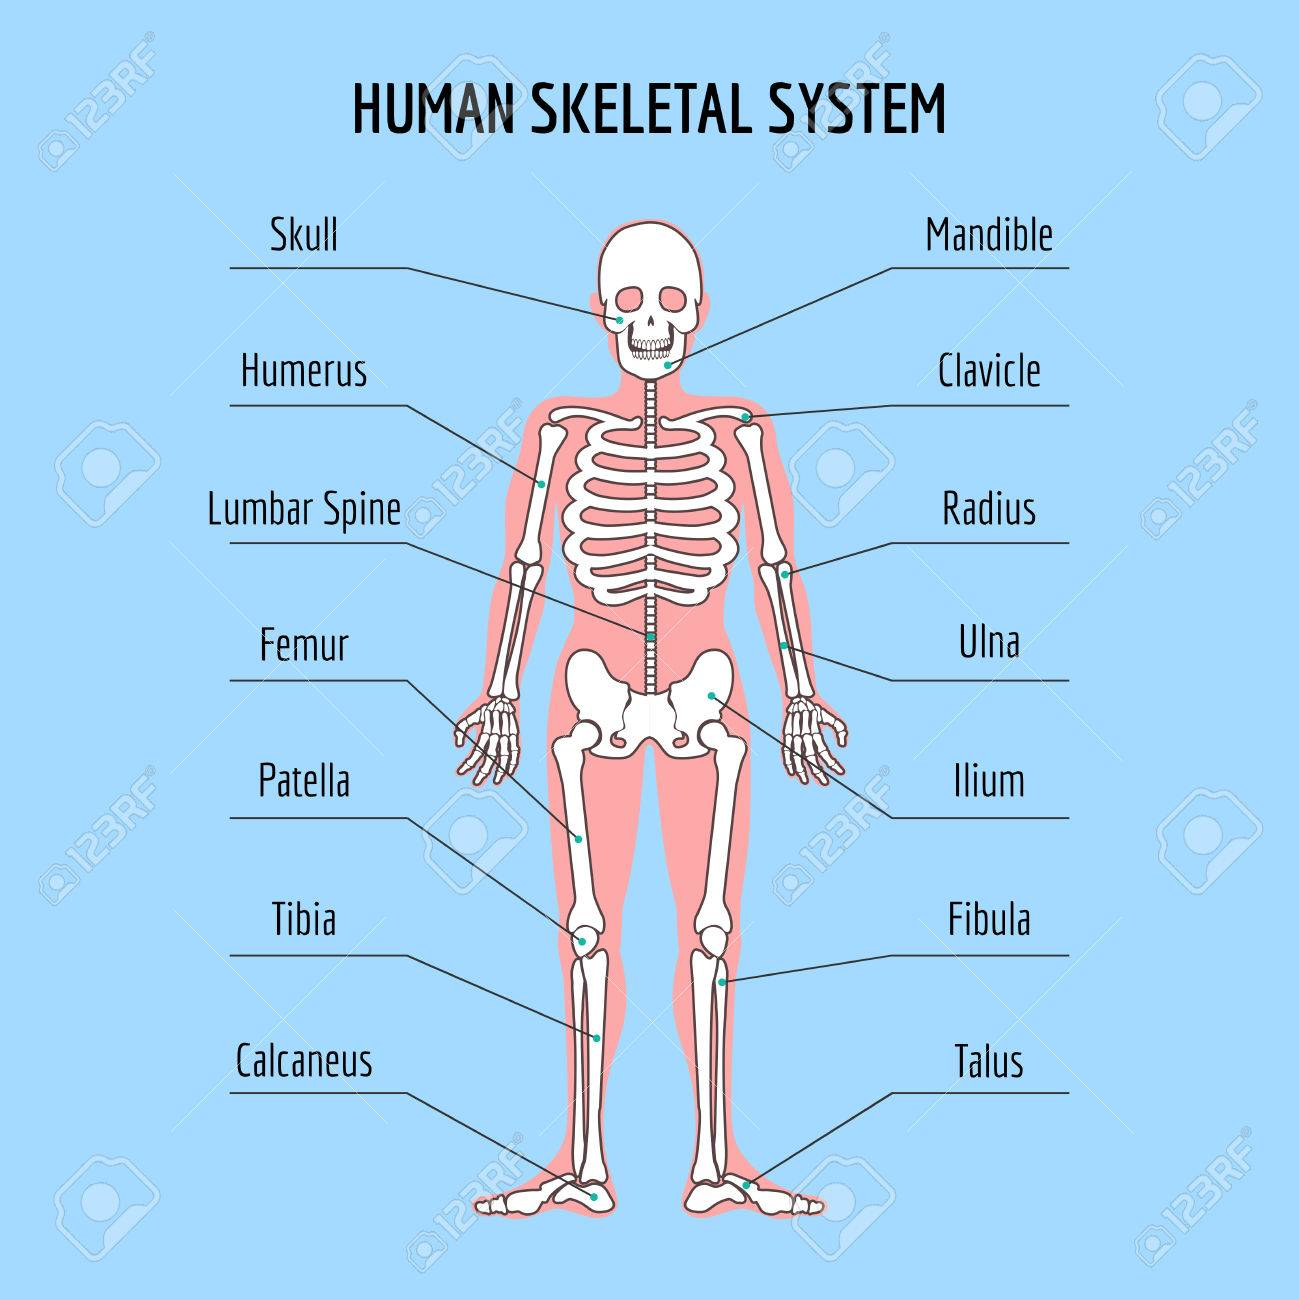 Human Skeletal System Vector Human Bone Anatomy Illustration